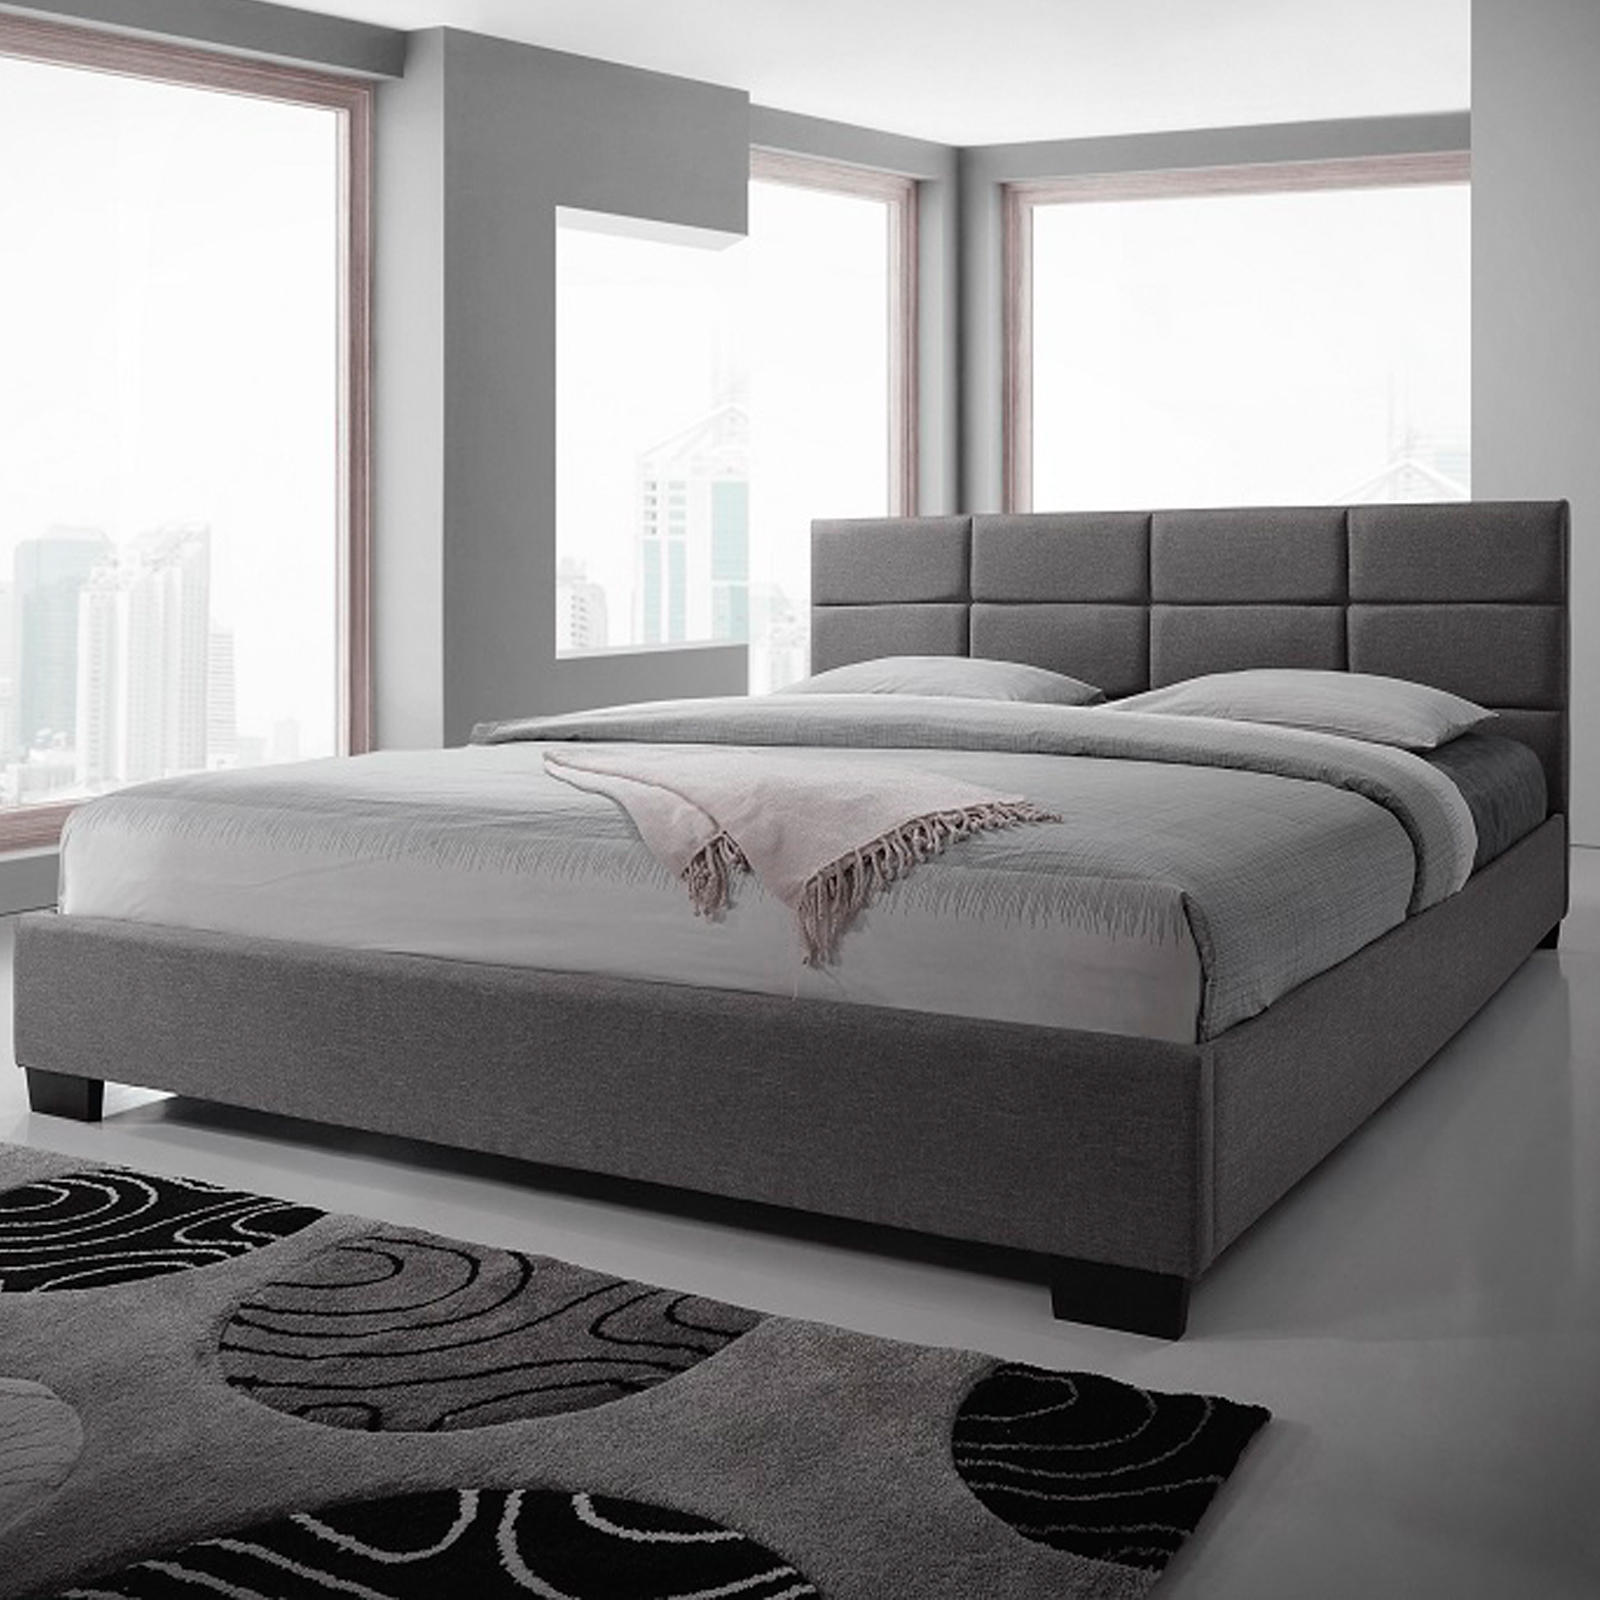 New king size fabric bed frame light grey for Mobilia king size bed